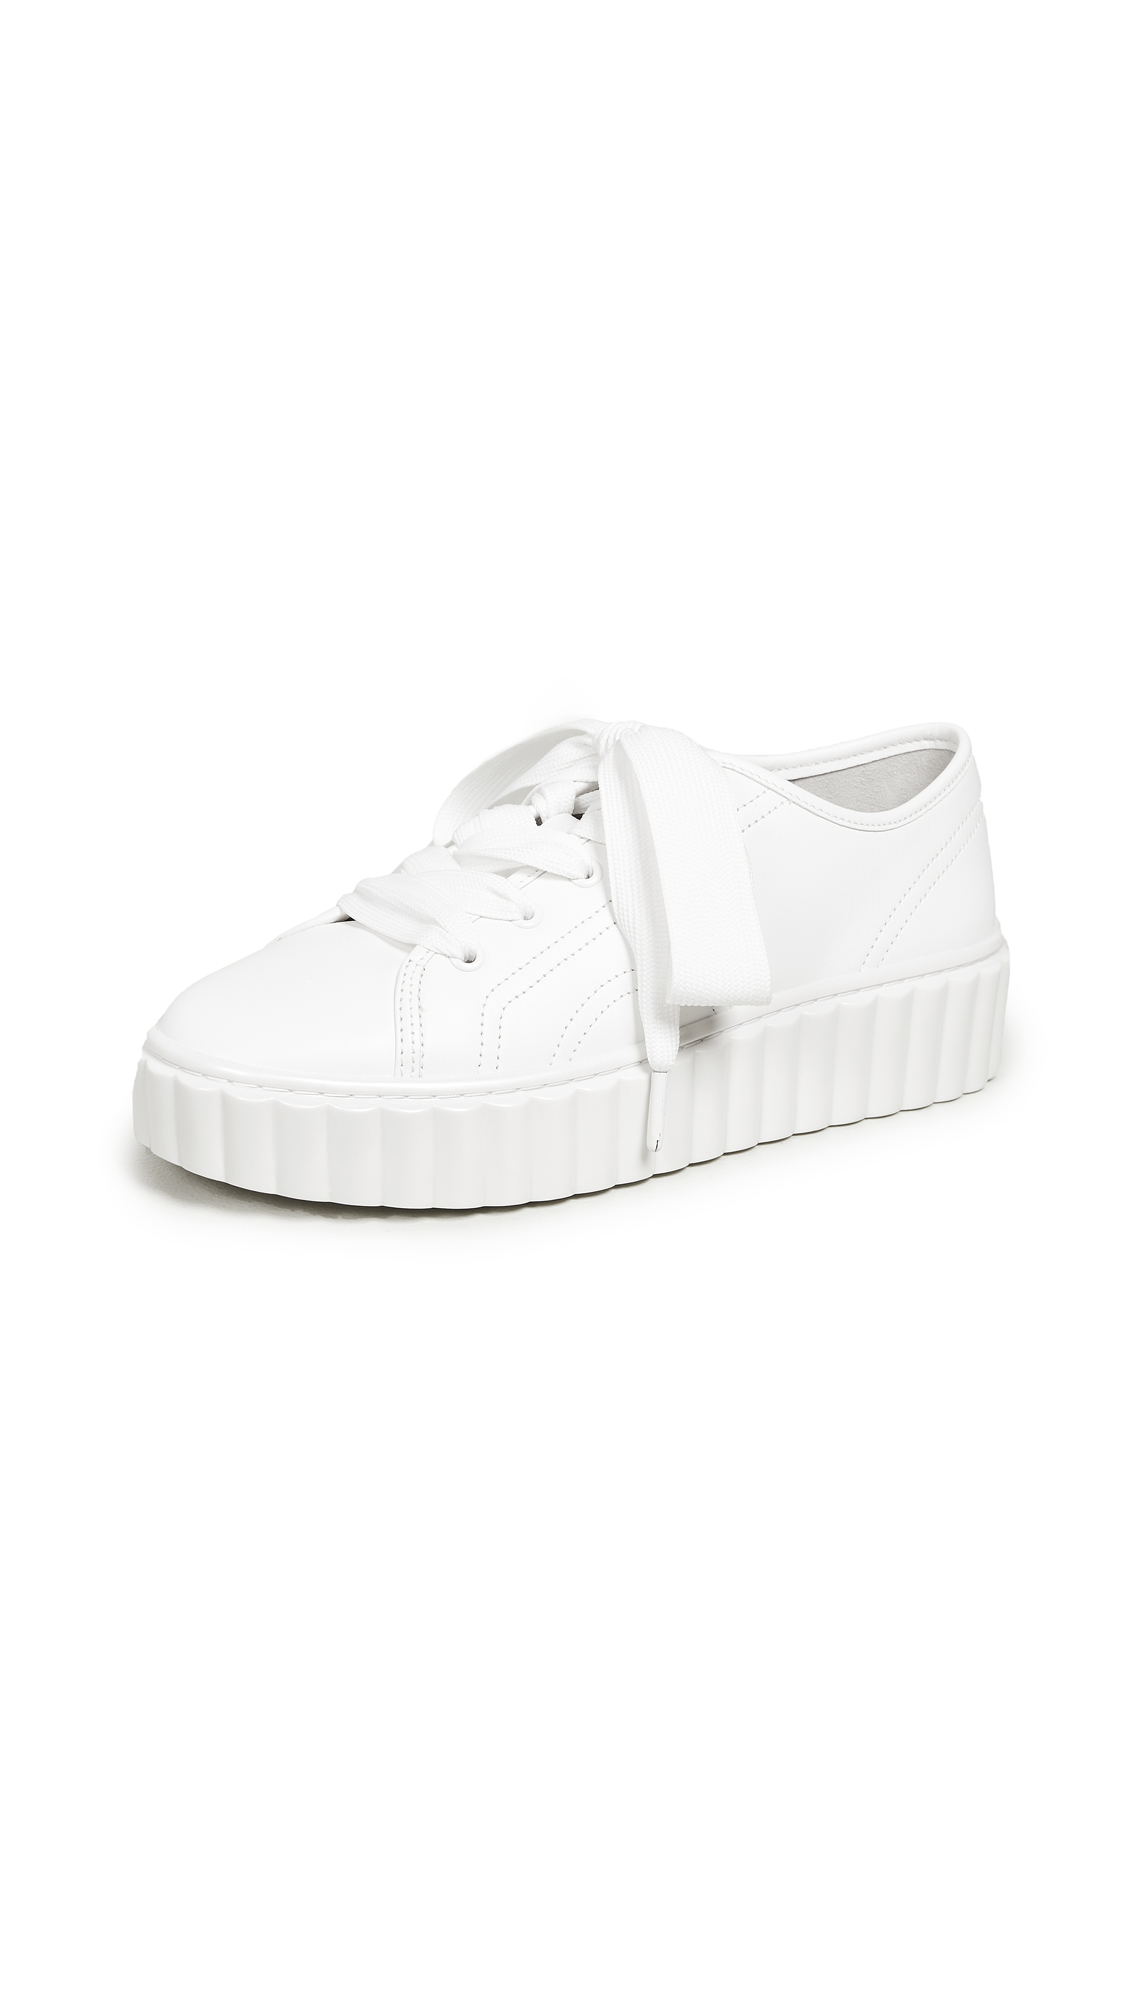 Tory Burch Scallop Sneakers - Snow White